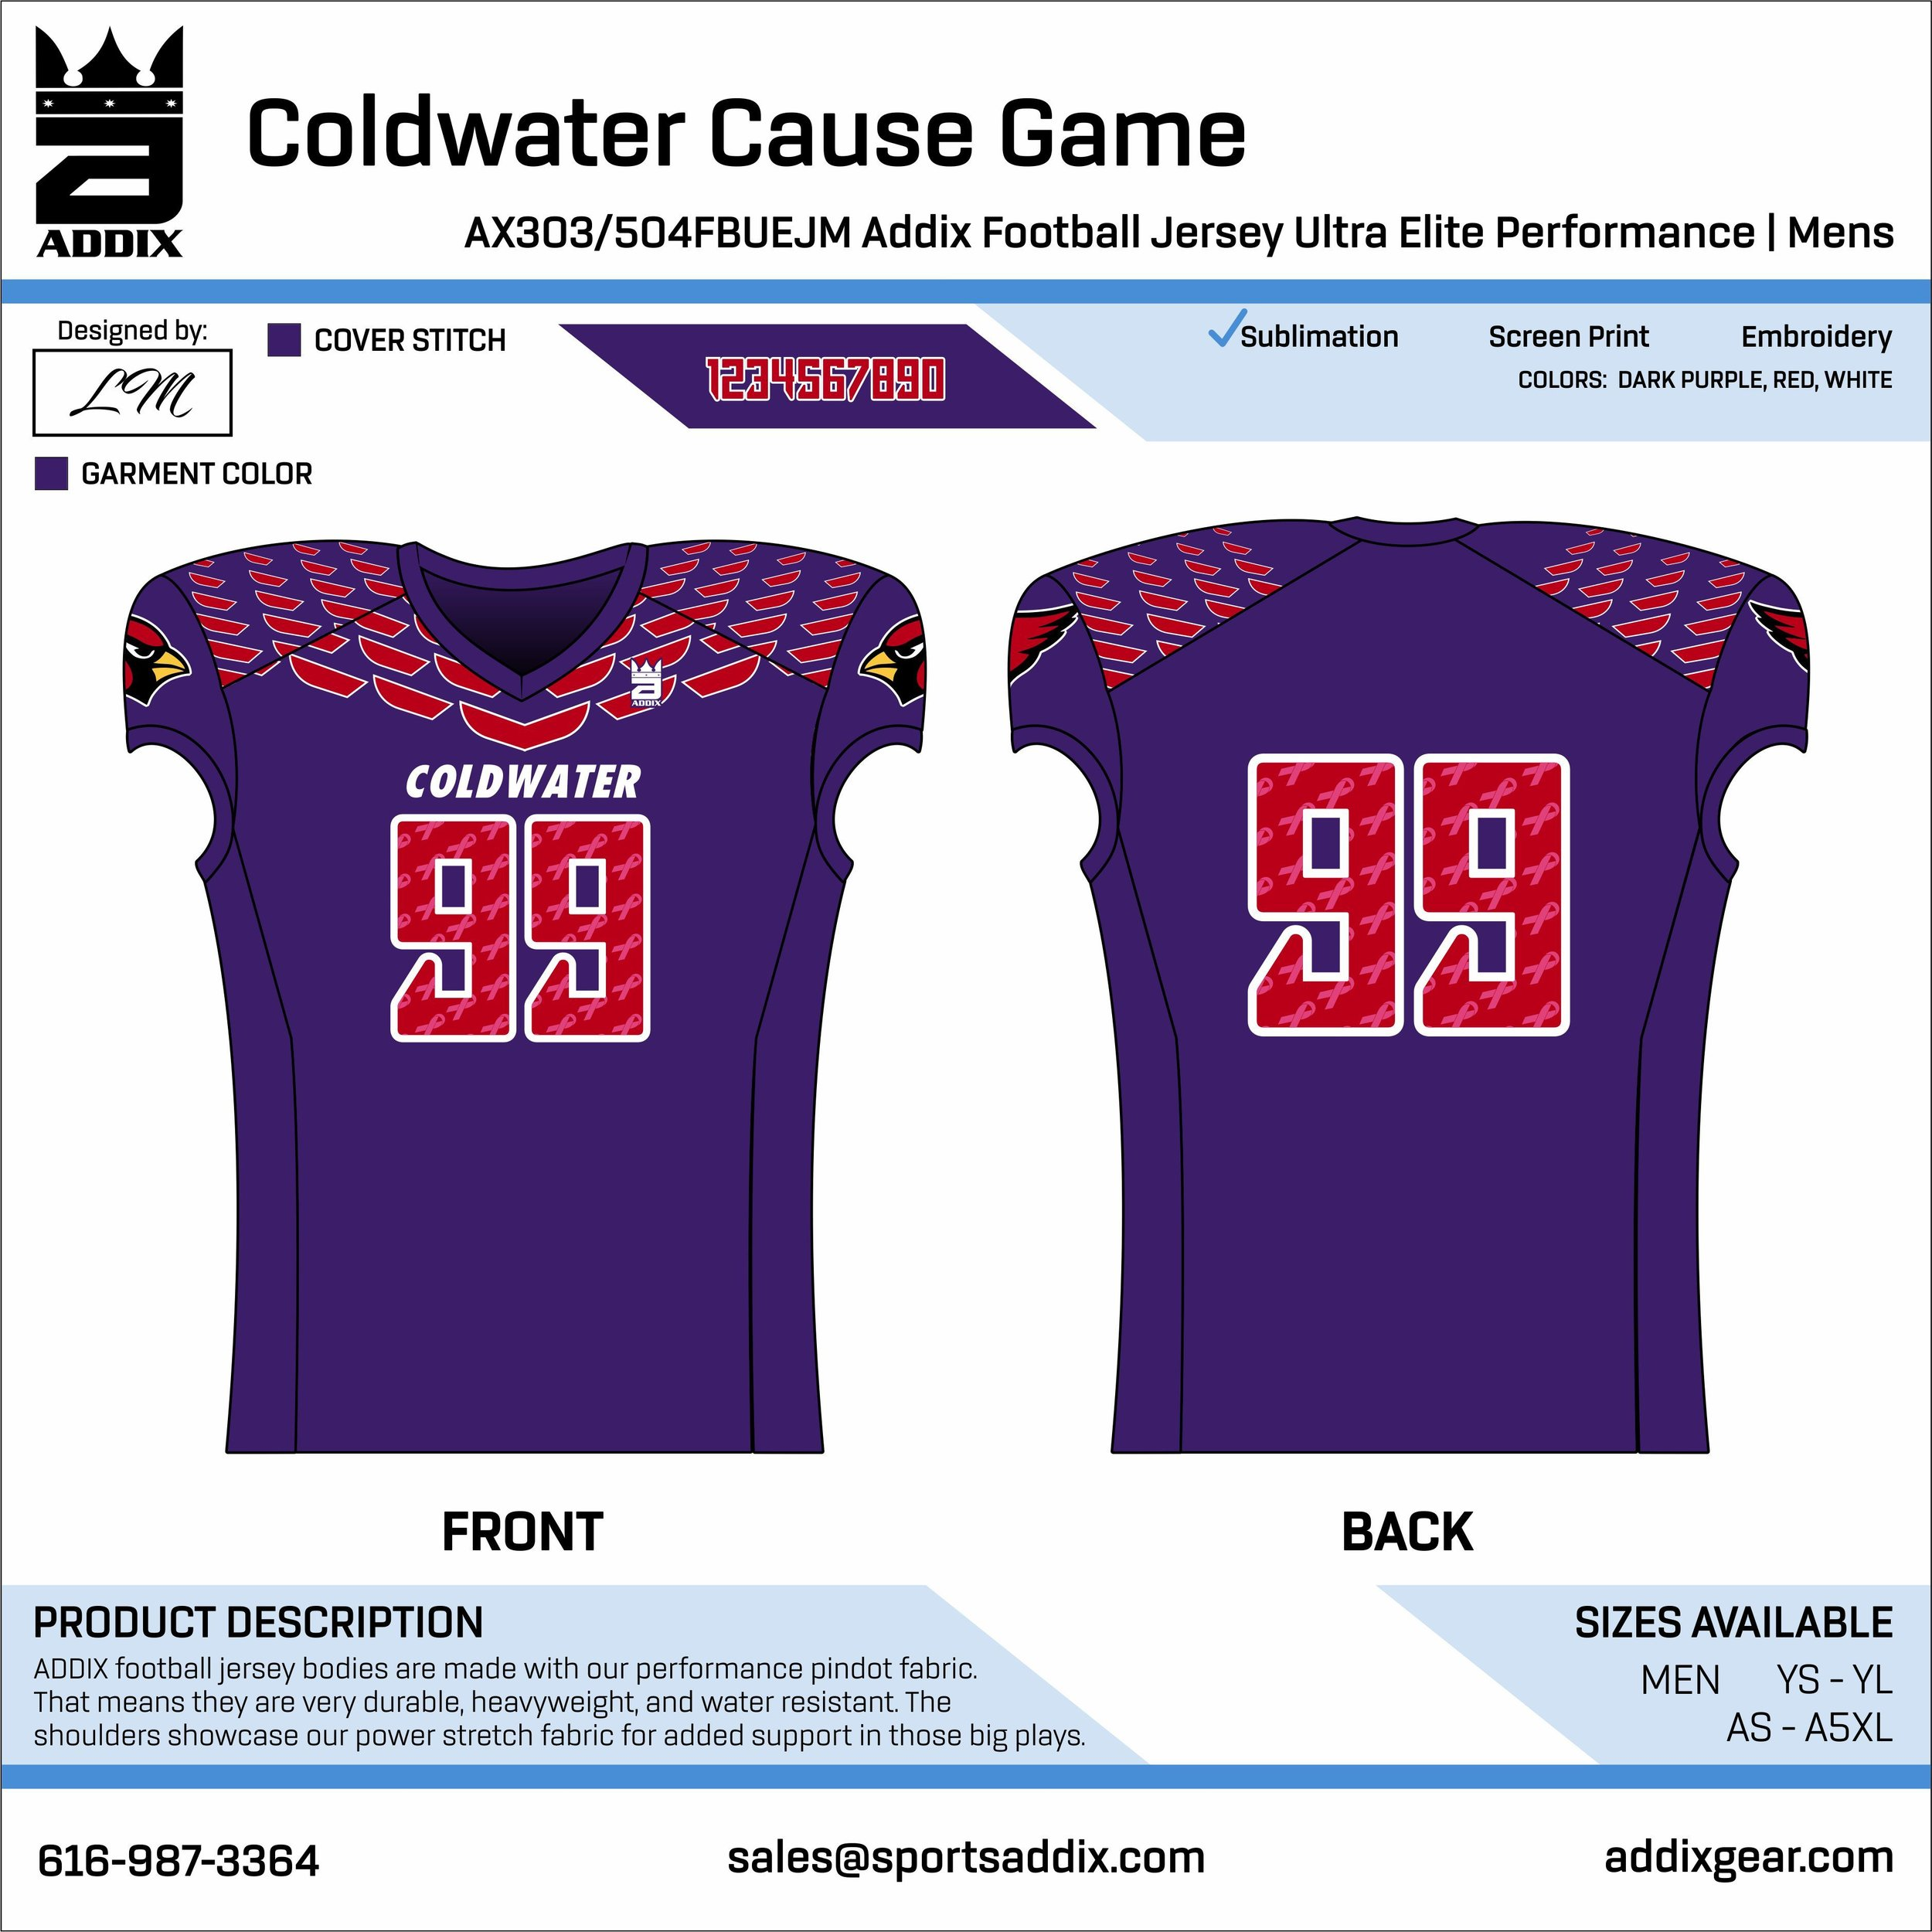 Coldwater Cause Game_12-4_LM_eup jersey.jpg